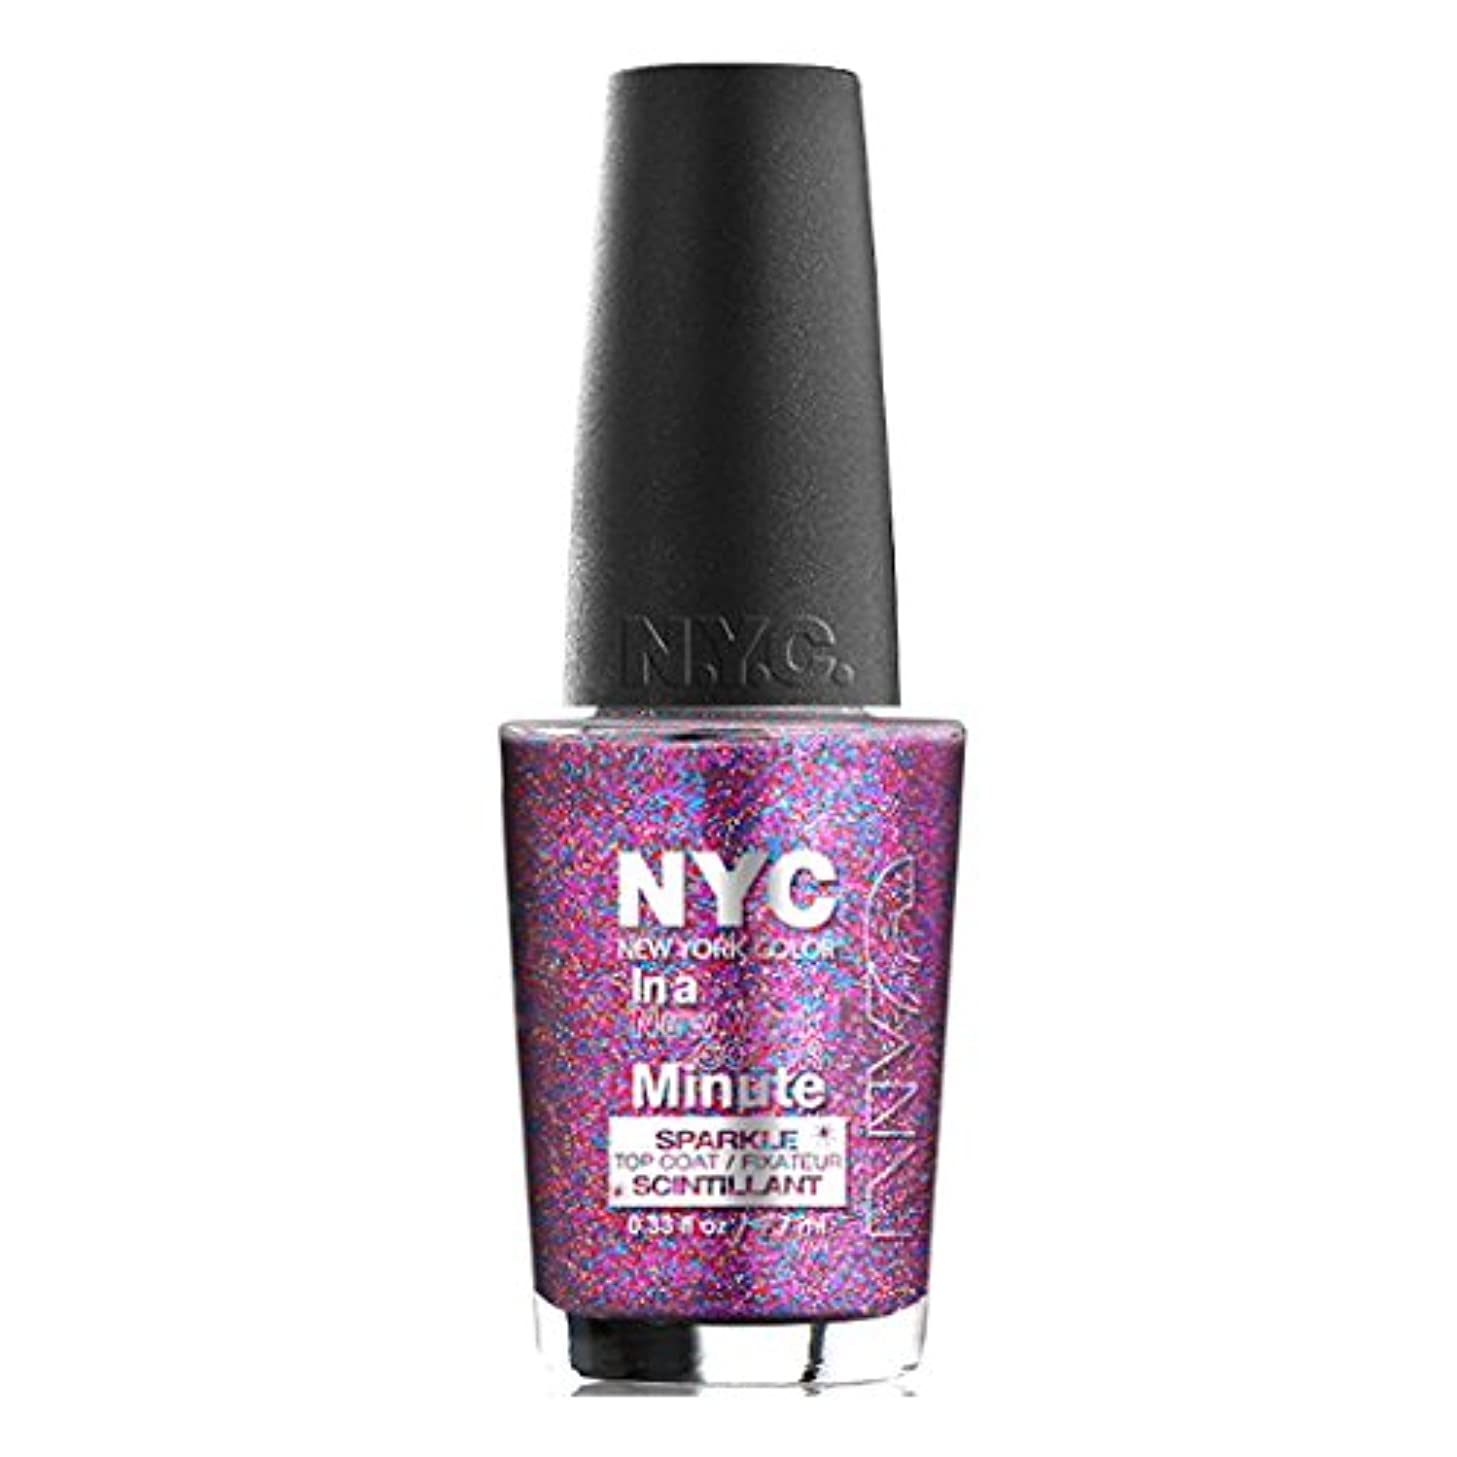 呼び出す下る剥ぎ取るNYC In A New York Color Minute Sparkle Top Coat Big City Dazzle (並行輸入品)